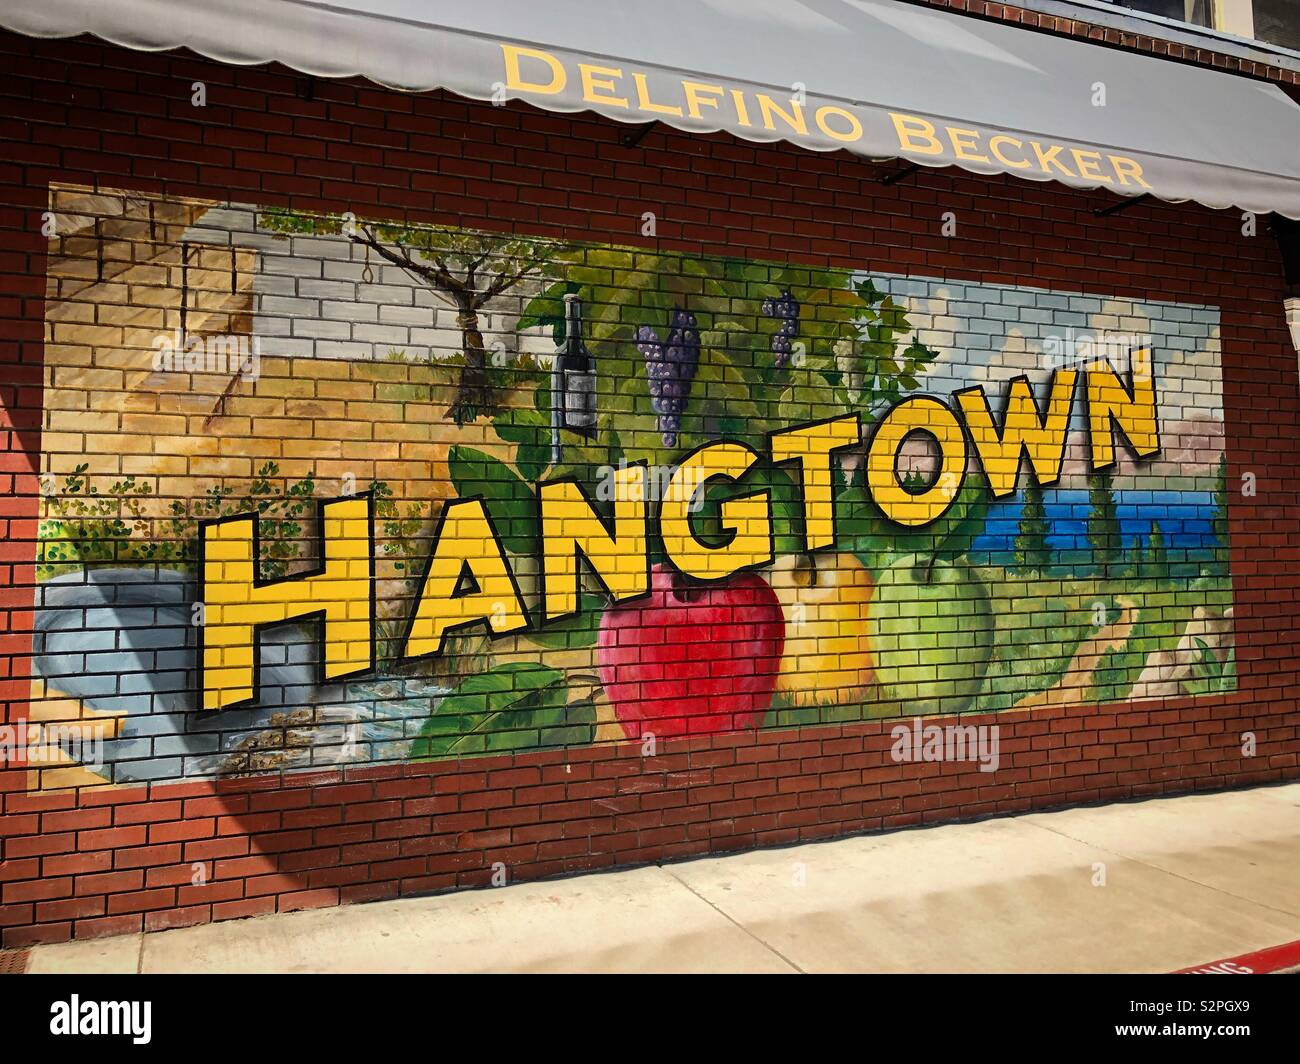 Hangtown mural in Placerville, California. Stock Photo